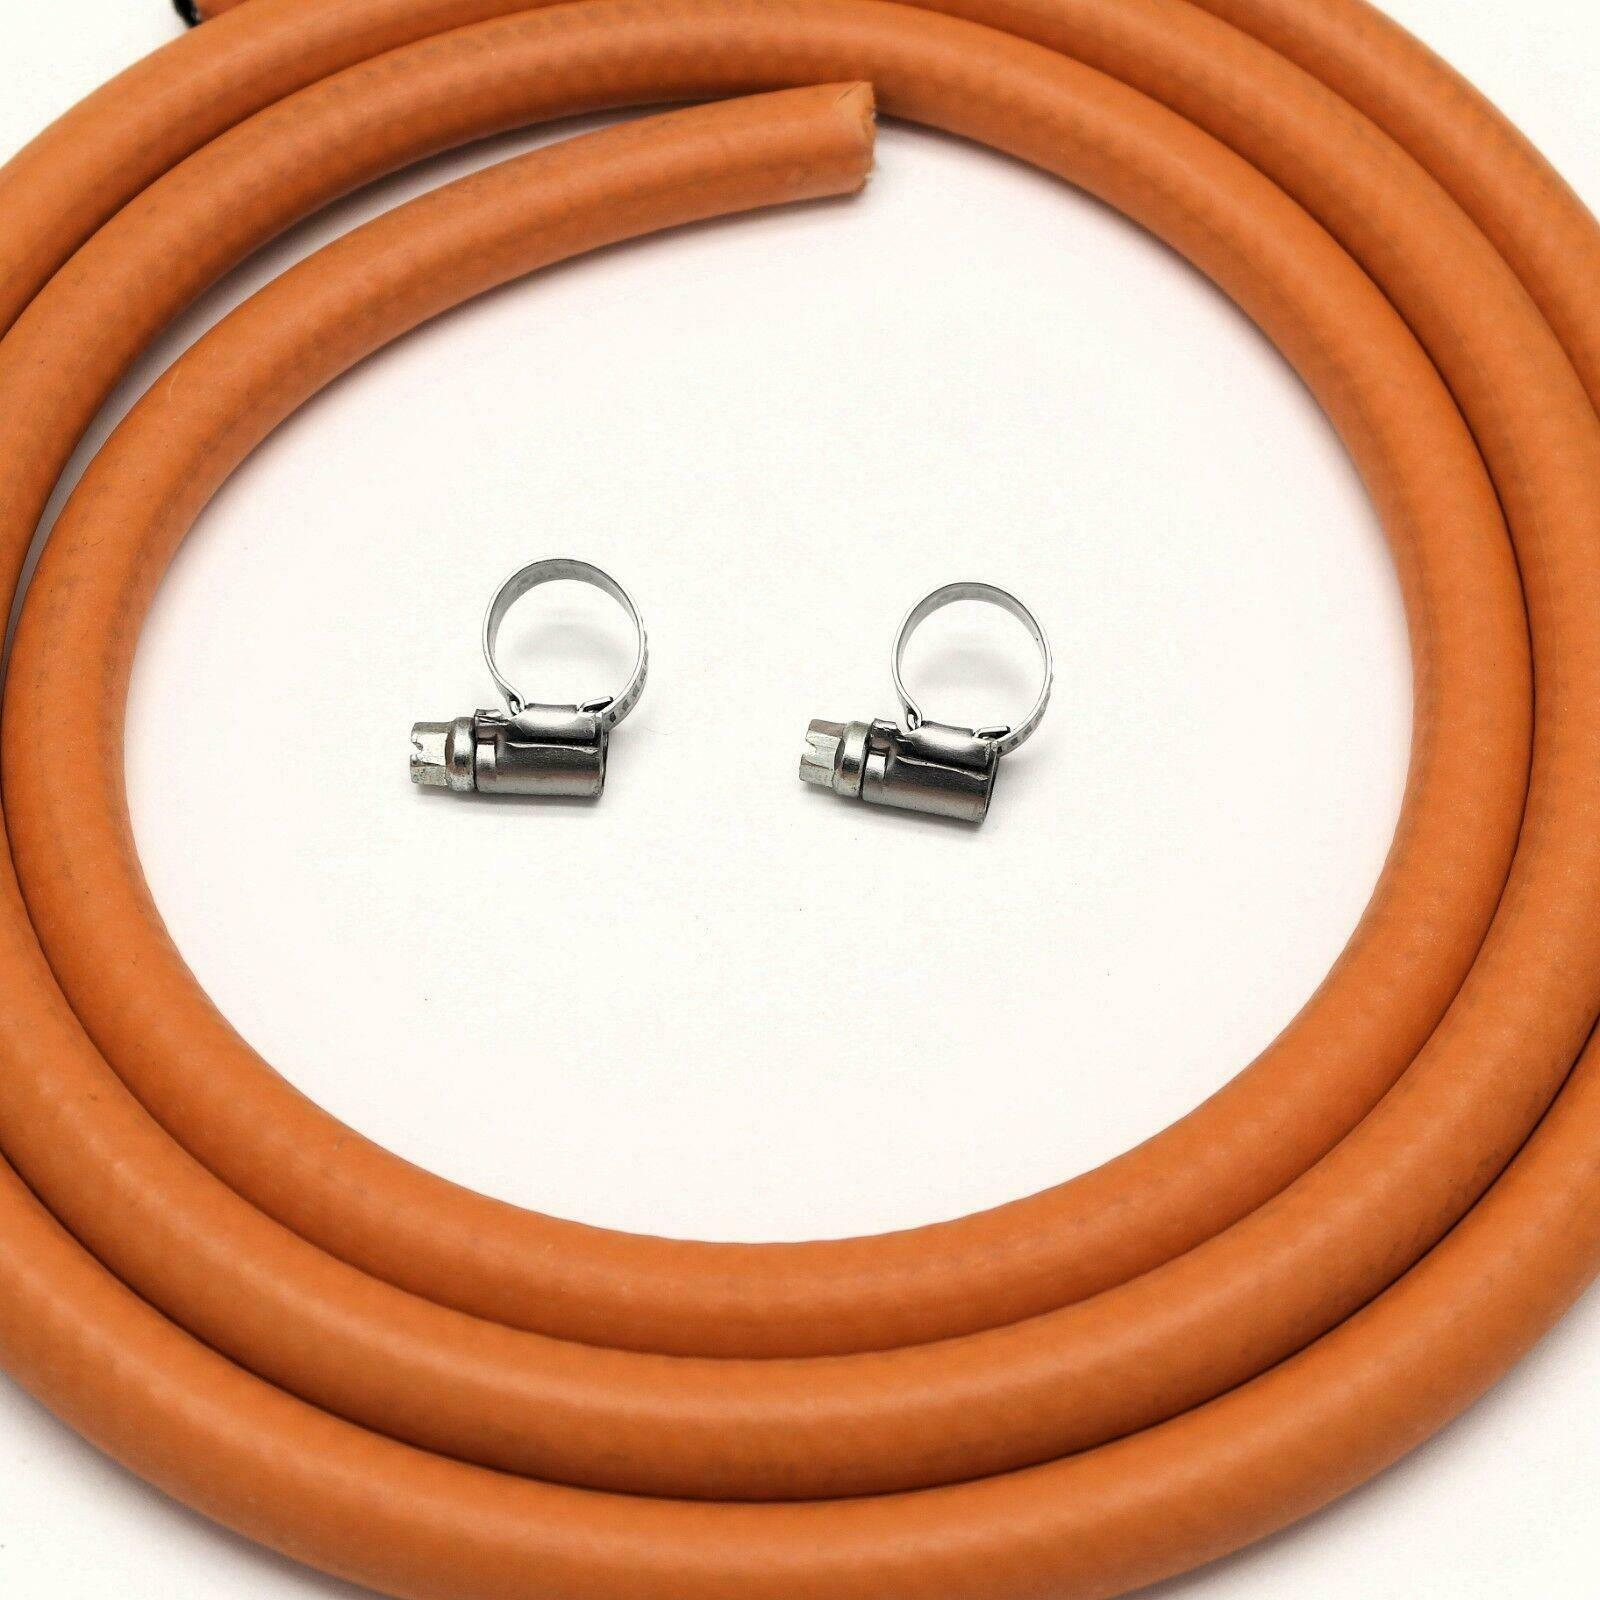 2m 8mm I/D LPG Butane/Propane Gas Hose Withe 2 Stainless band Hose Clips